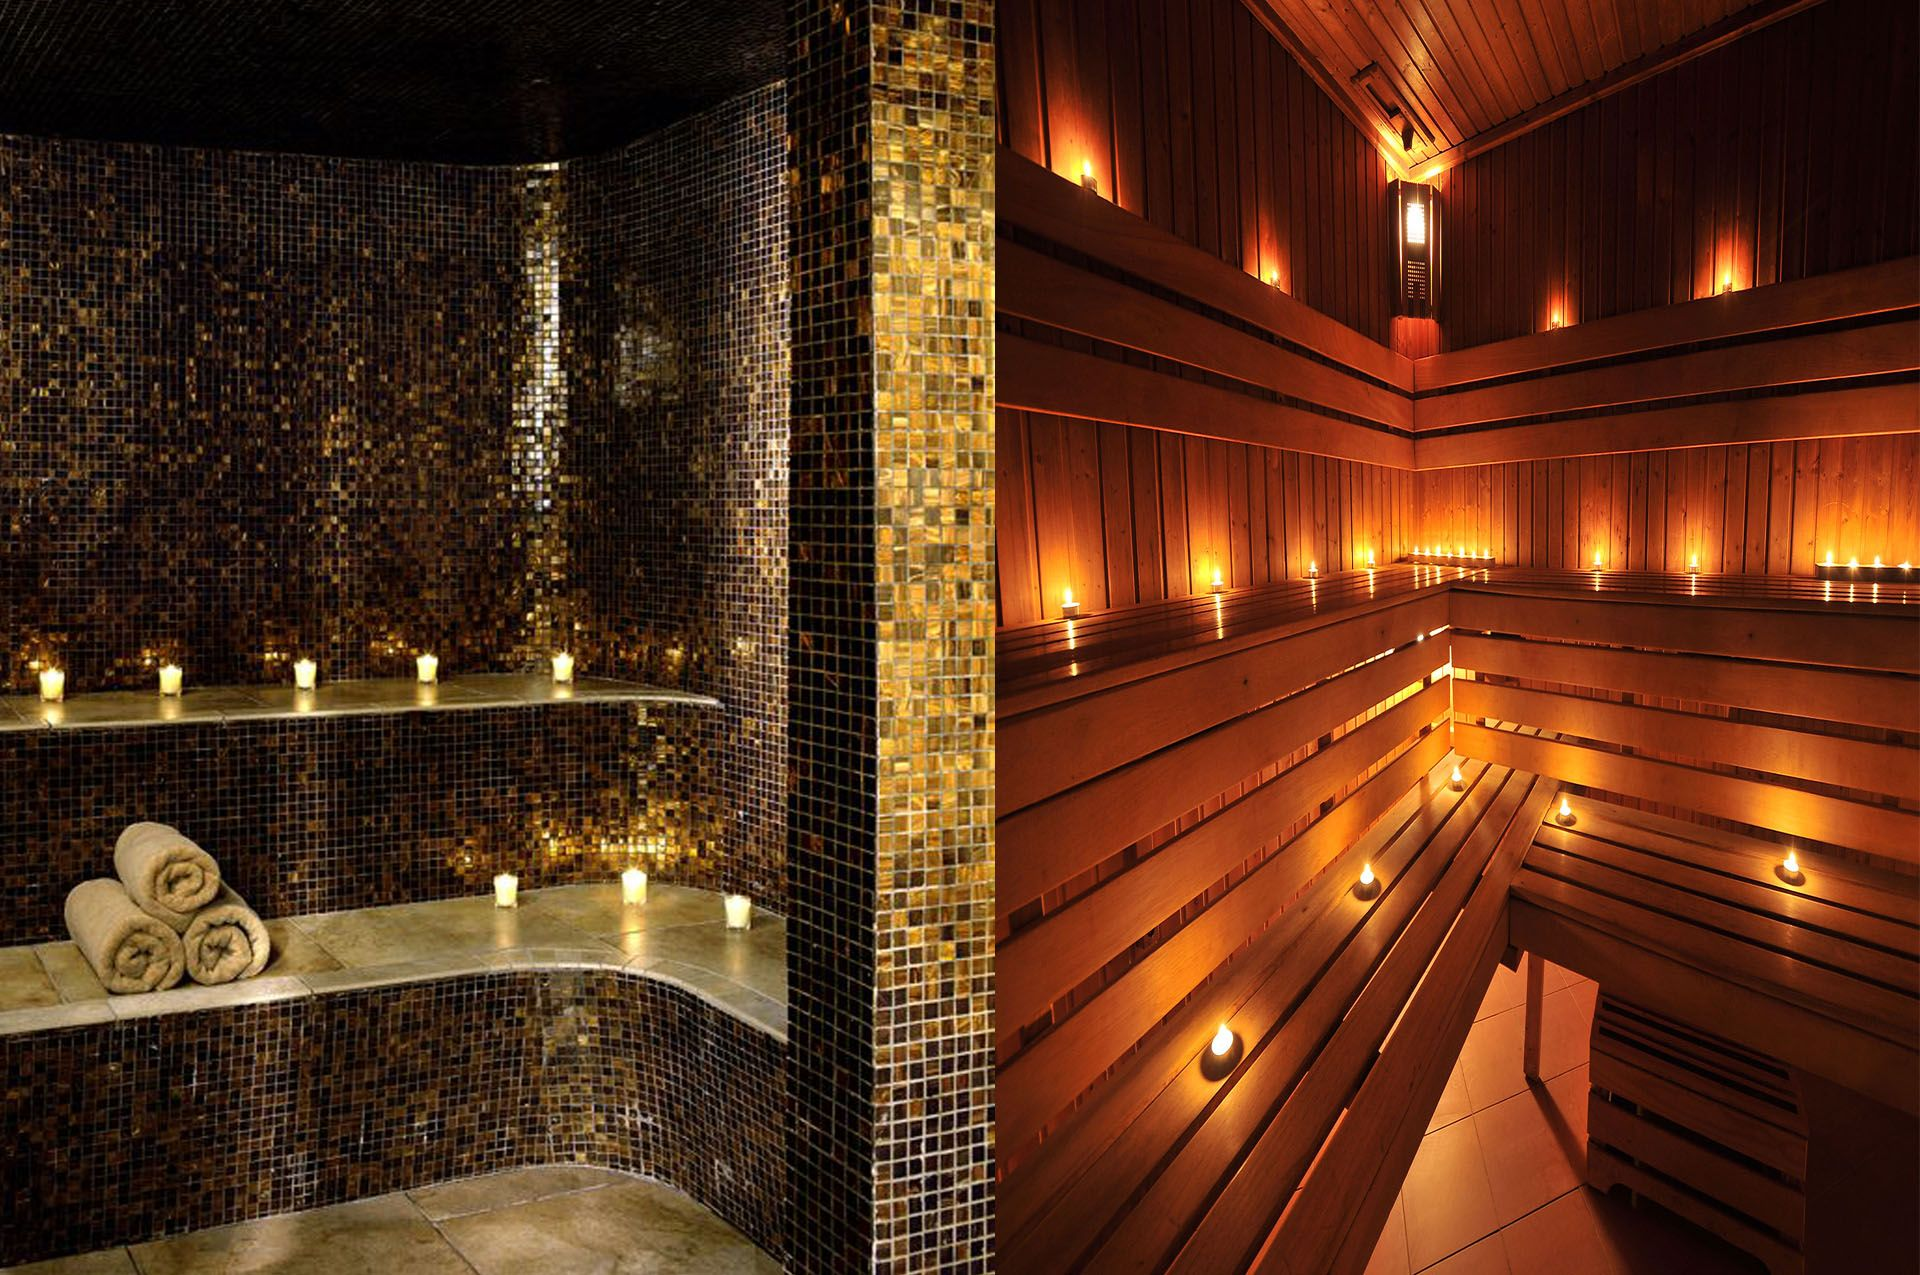 Steam Rooms And Saunas Why This Spa Power Couple Should Be In Heavy Rotation Steam Room Sauna Benefits Sauna